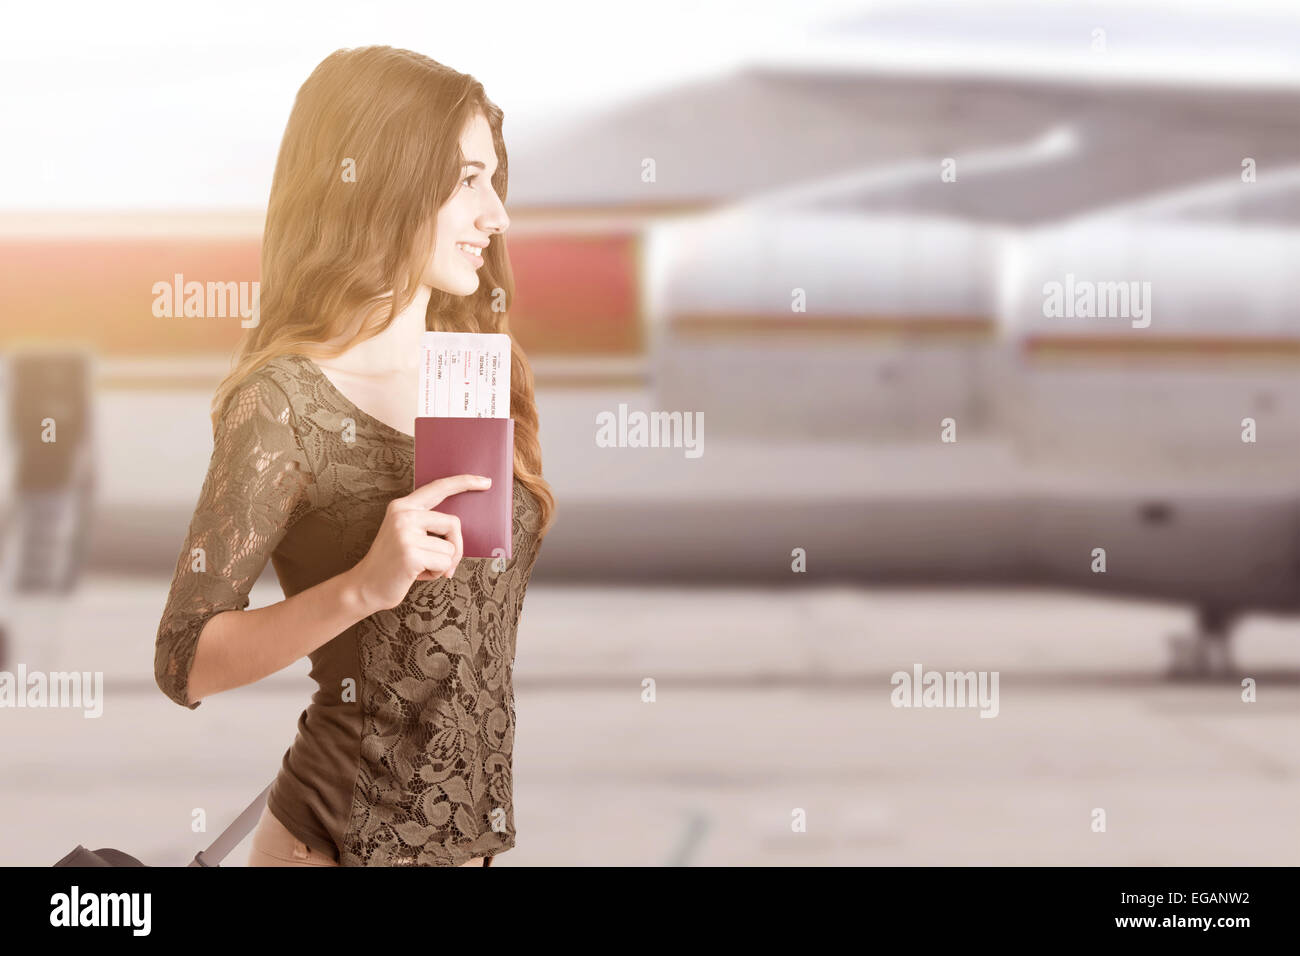 Woman about to board an airplane in an airport runaway at sunset - Stock Image